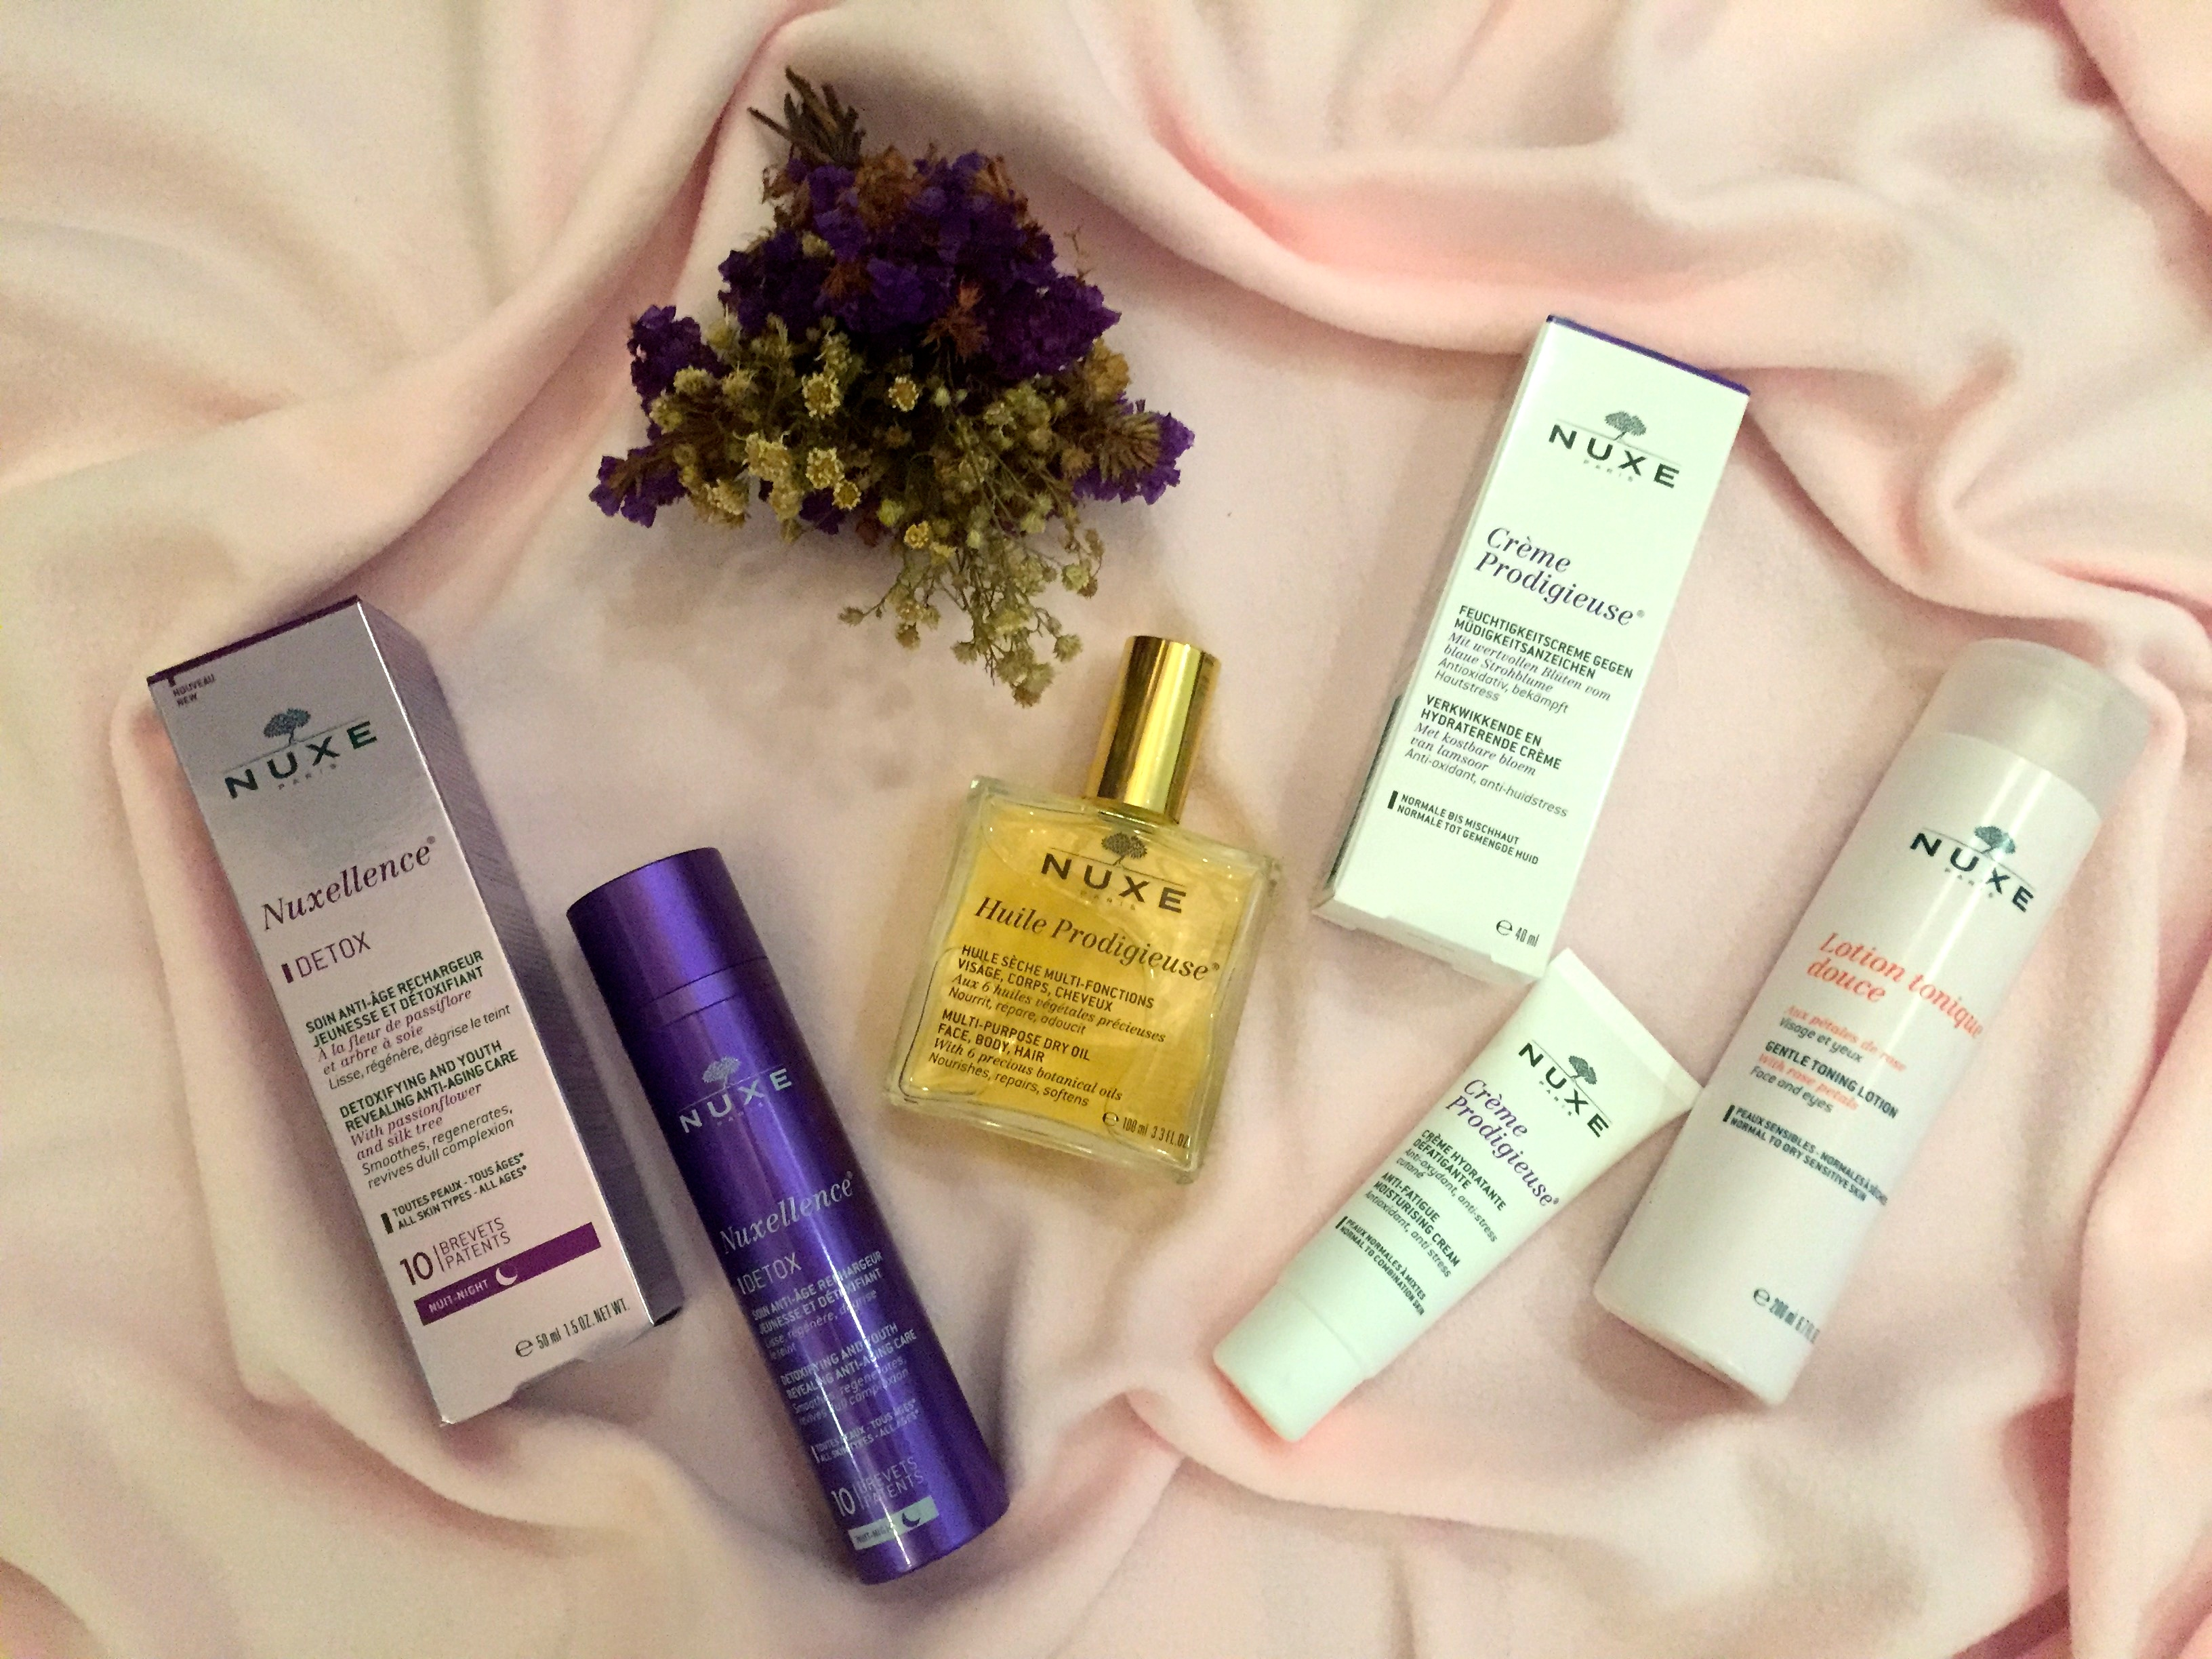 NUXE; Skin care from France